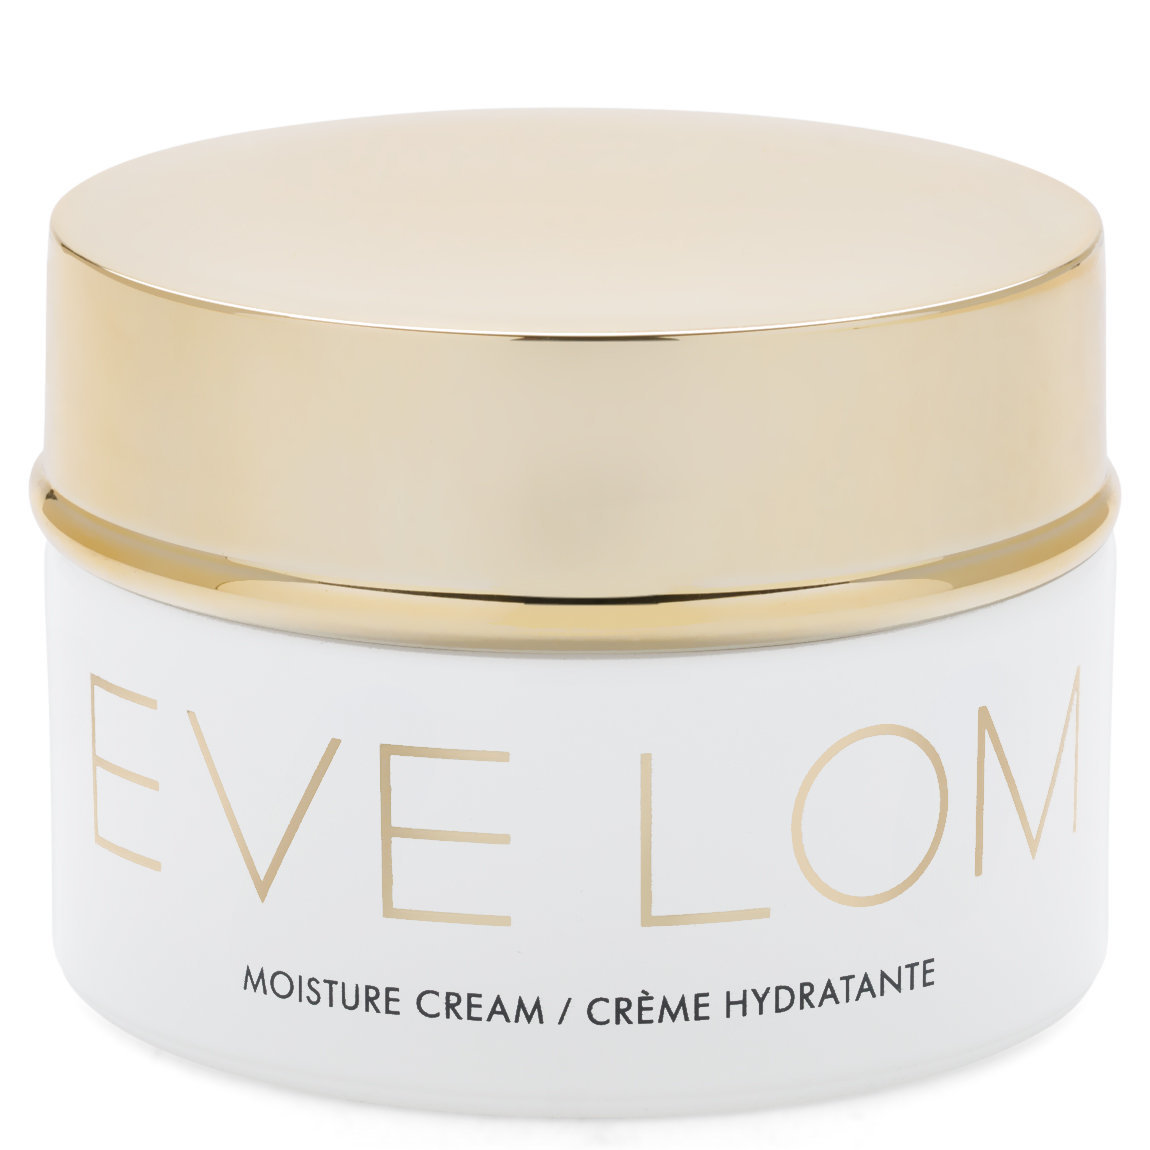 EVE LOM Moisture Cream product swatch.